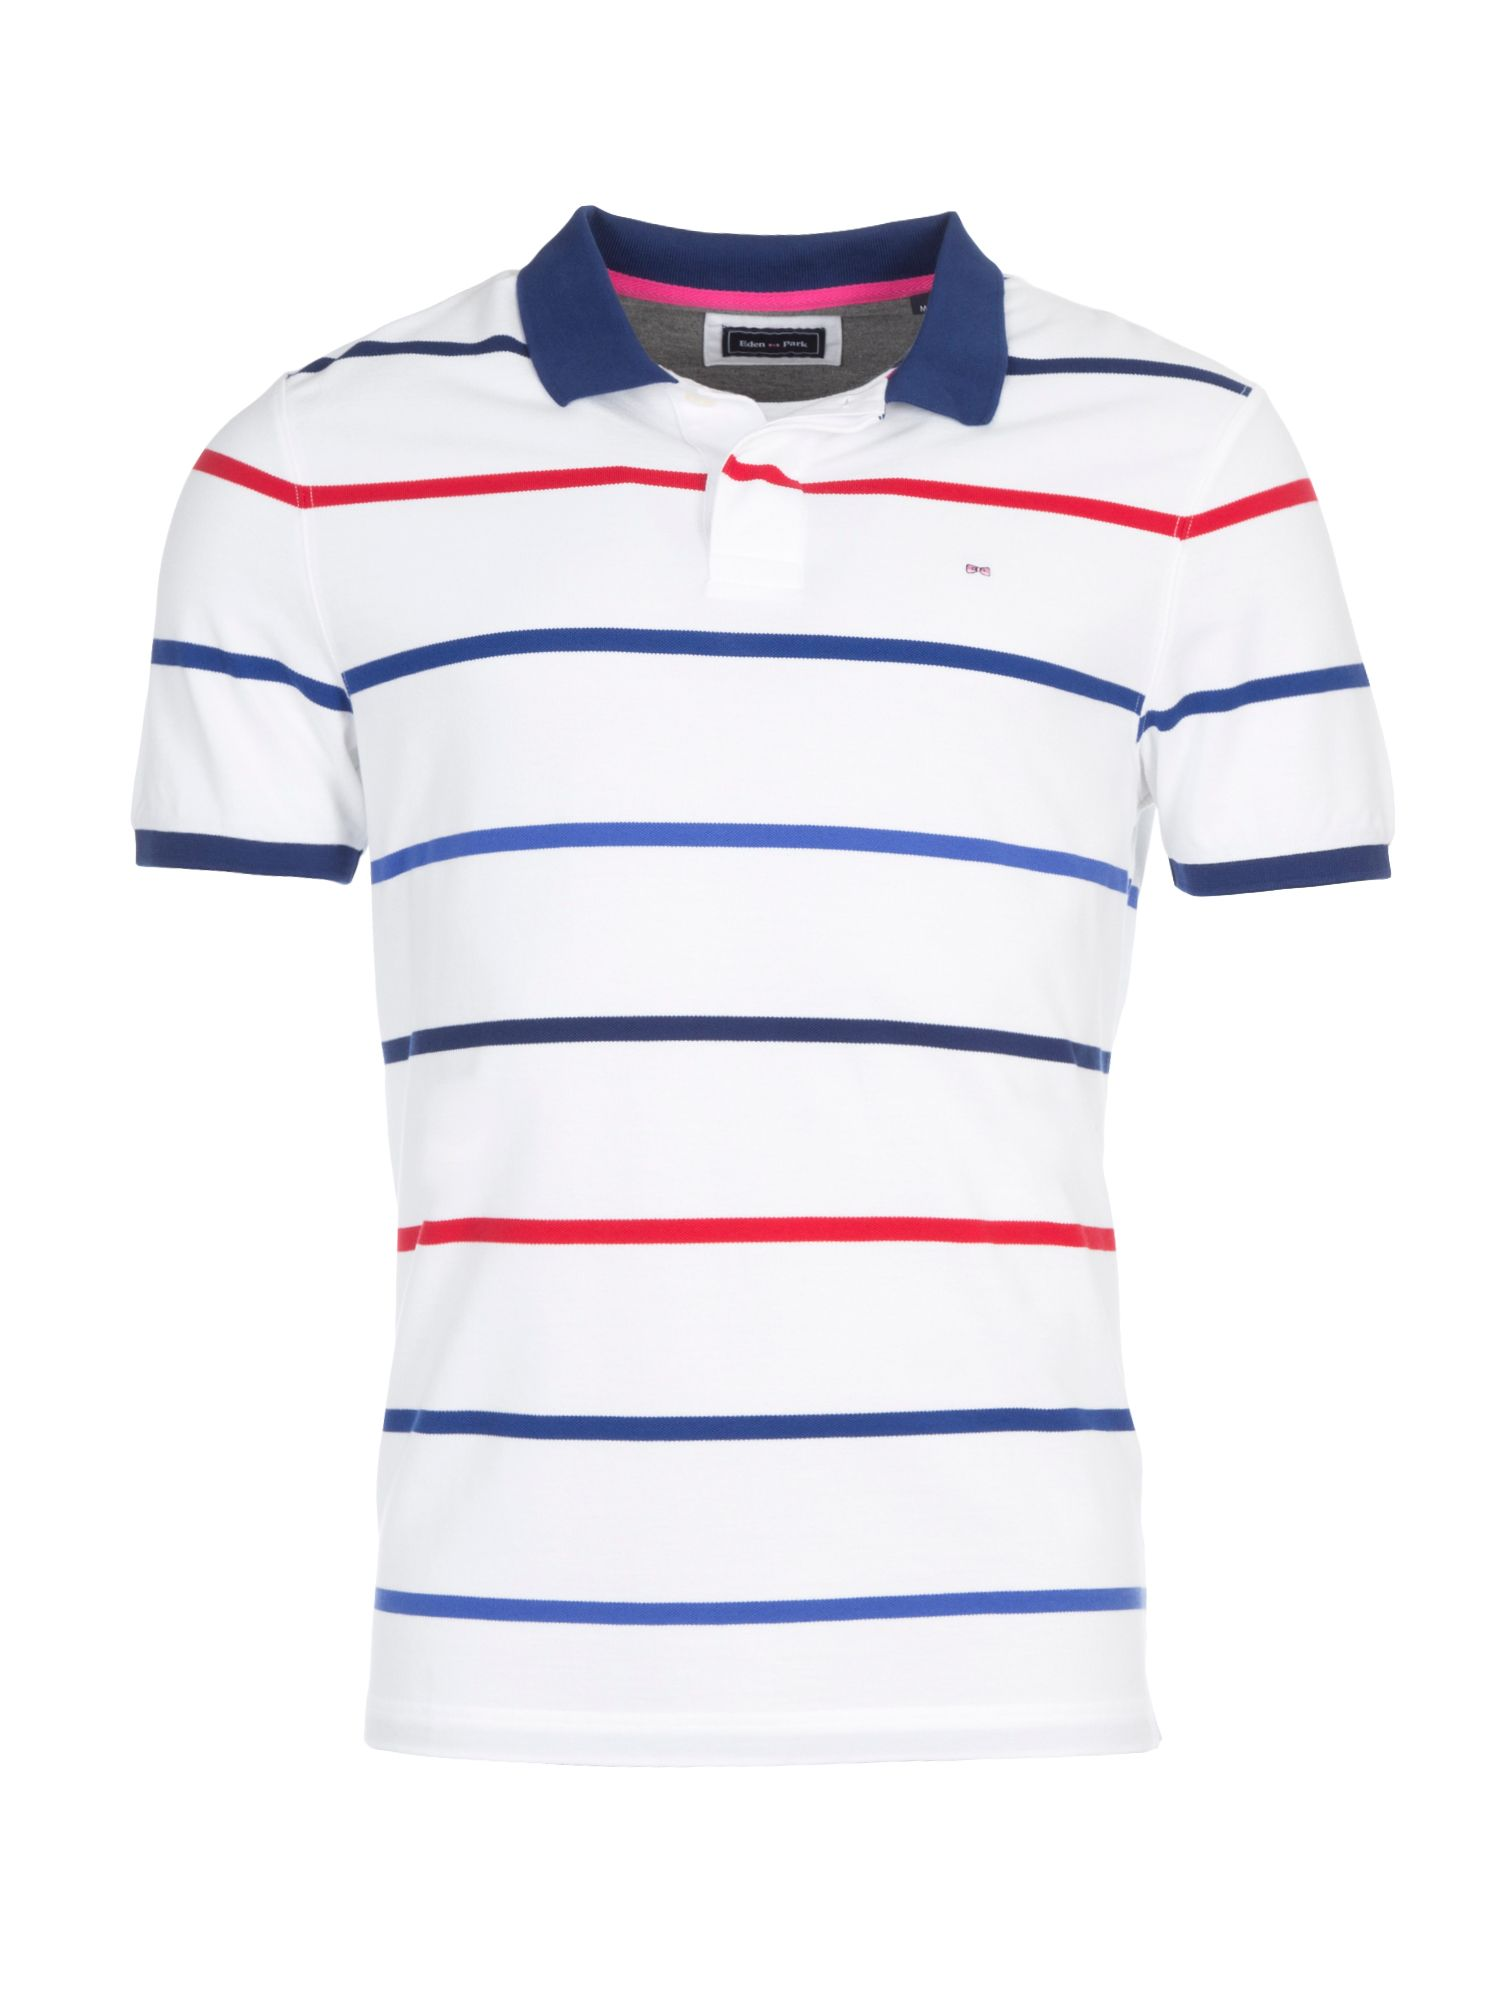 Men's Eden Park Striped Cotton Polo Shirt, White